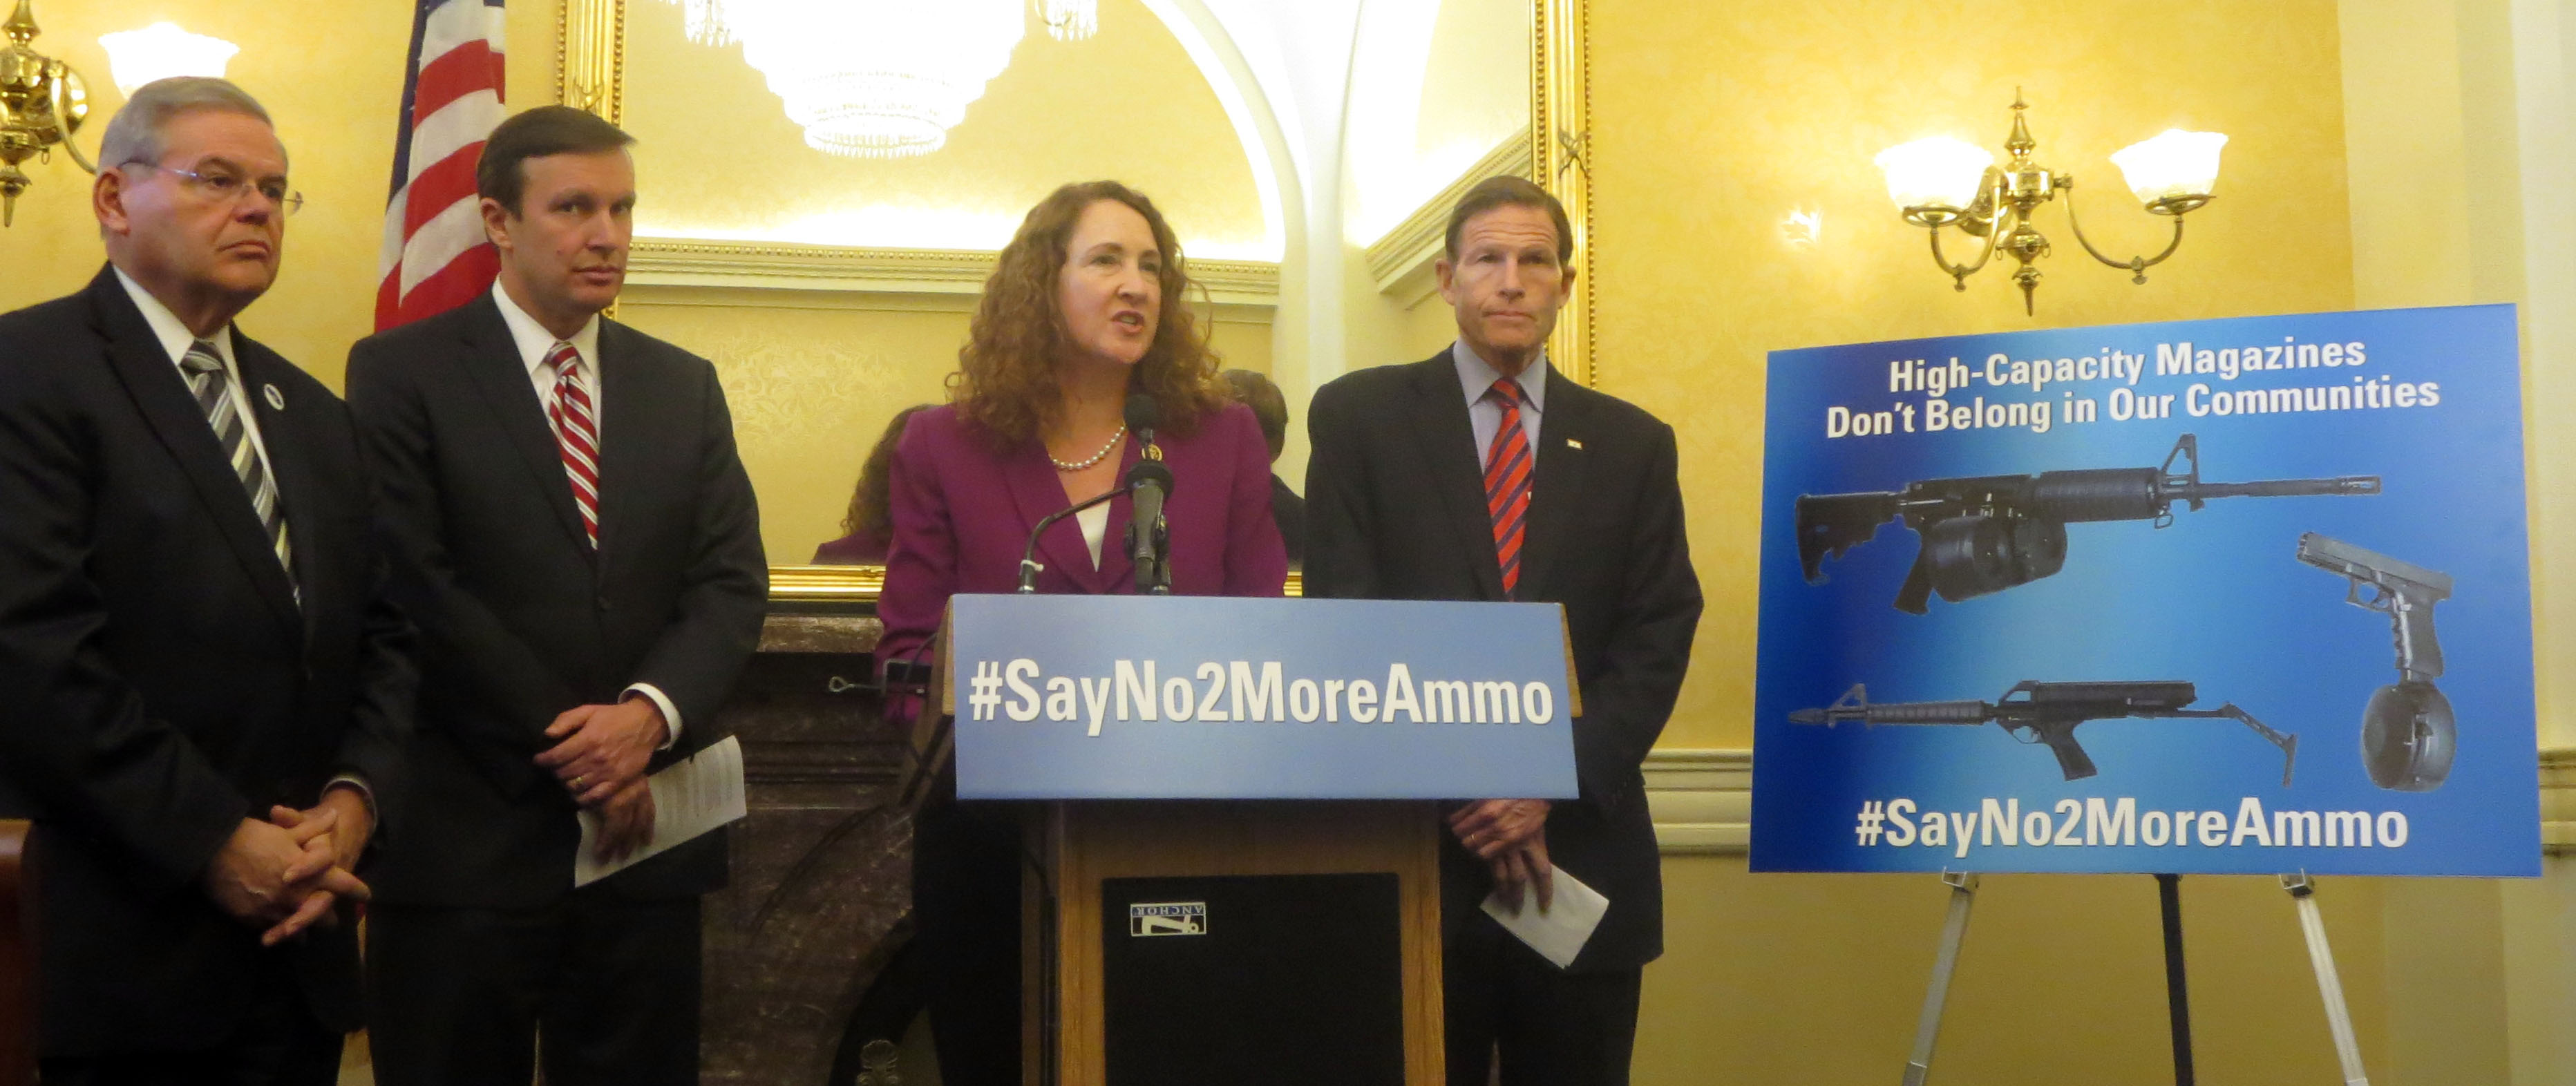 Newtown activists introduce bill banning high-capacity magazines